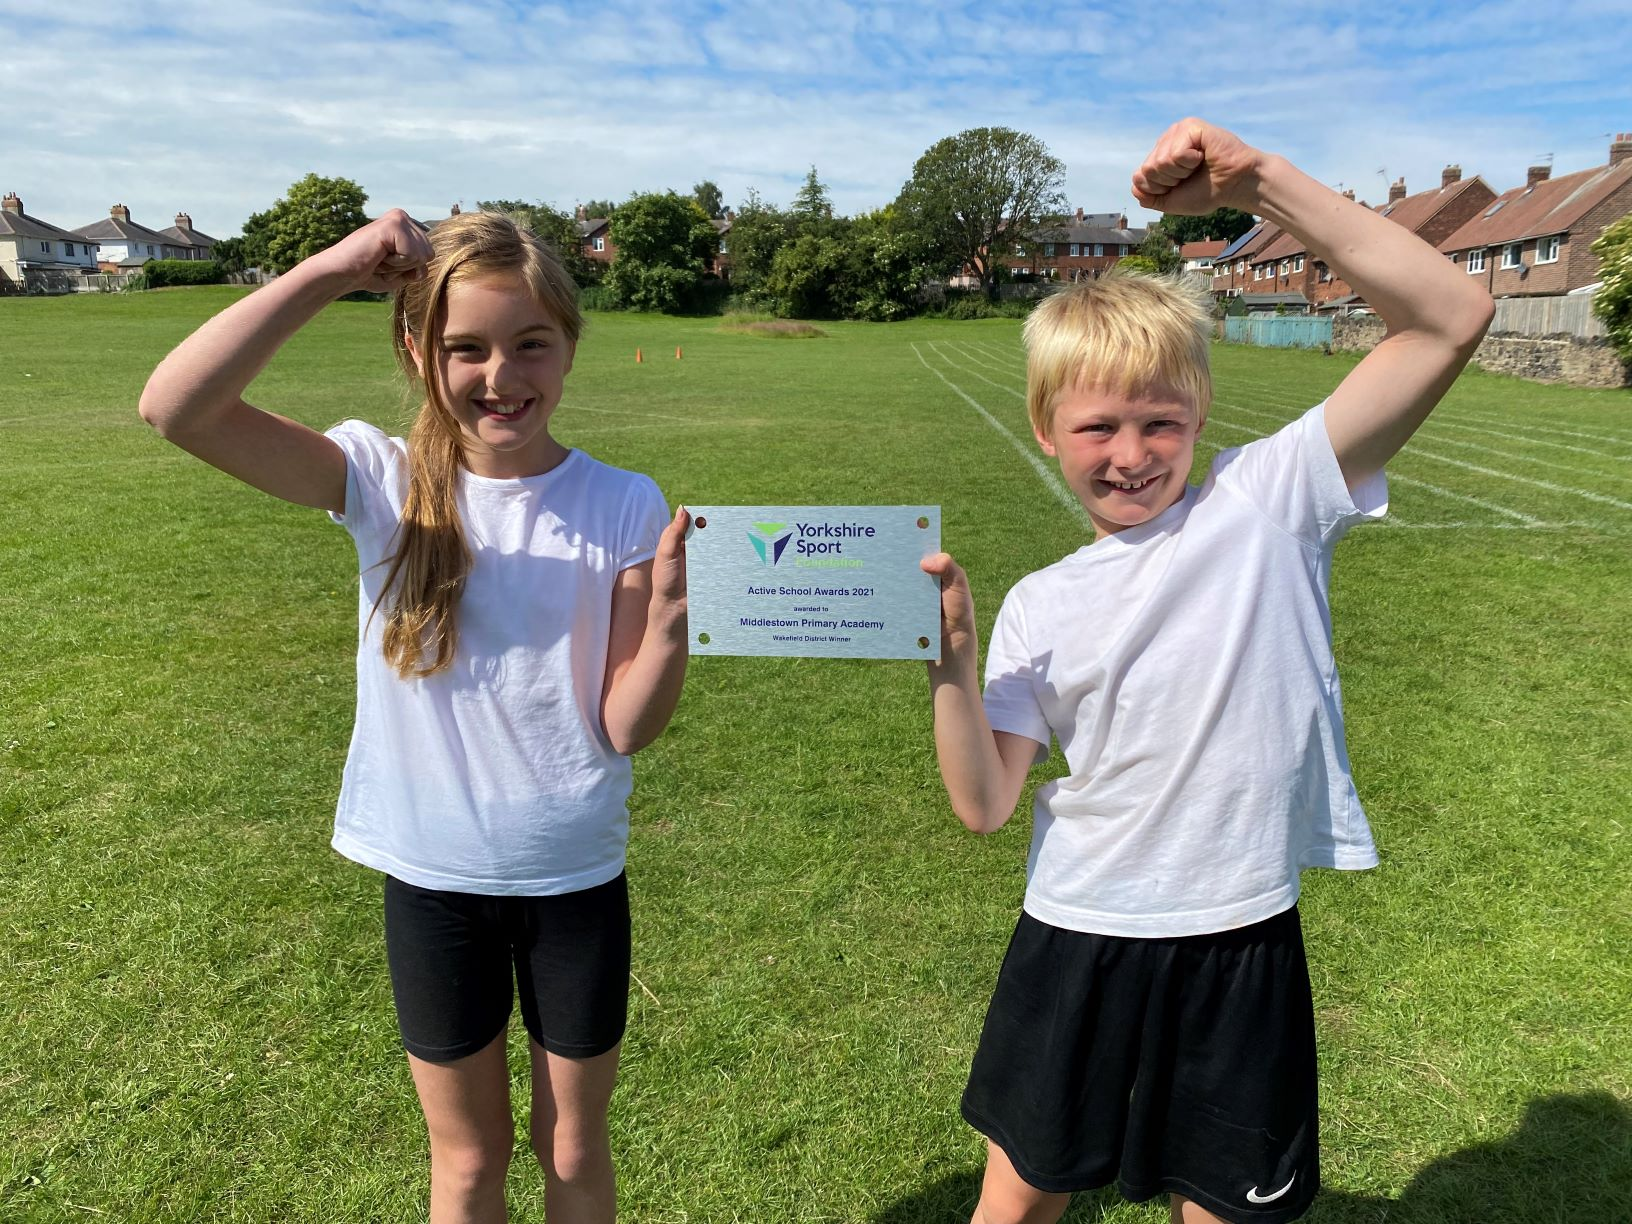 Awards success for Middlestown Primary Academy